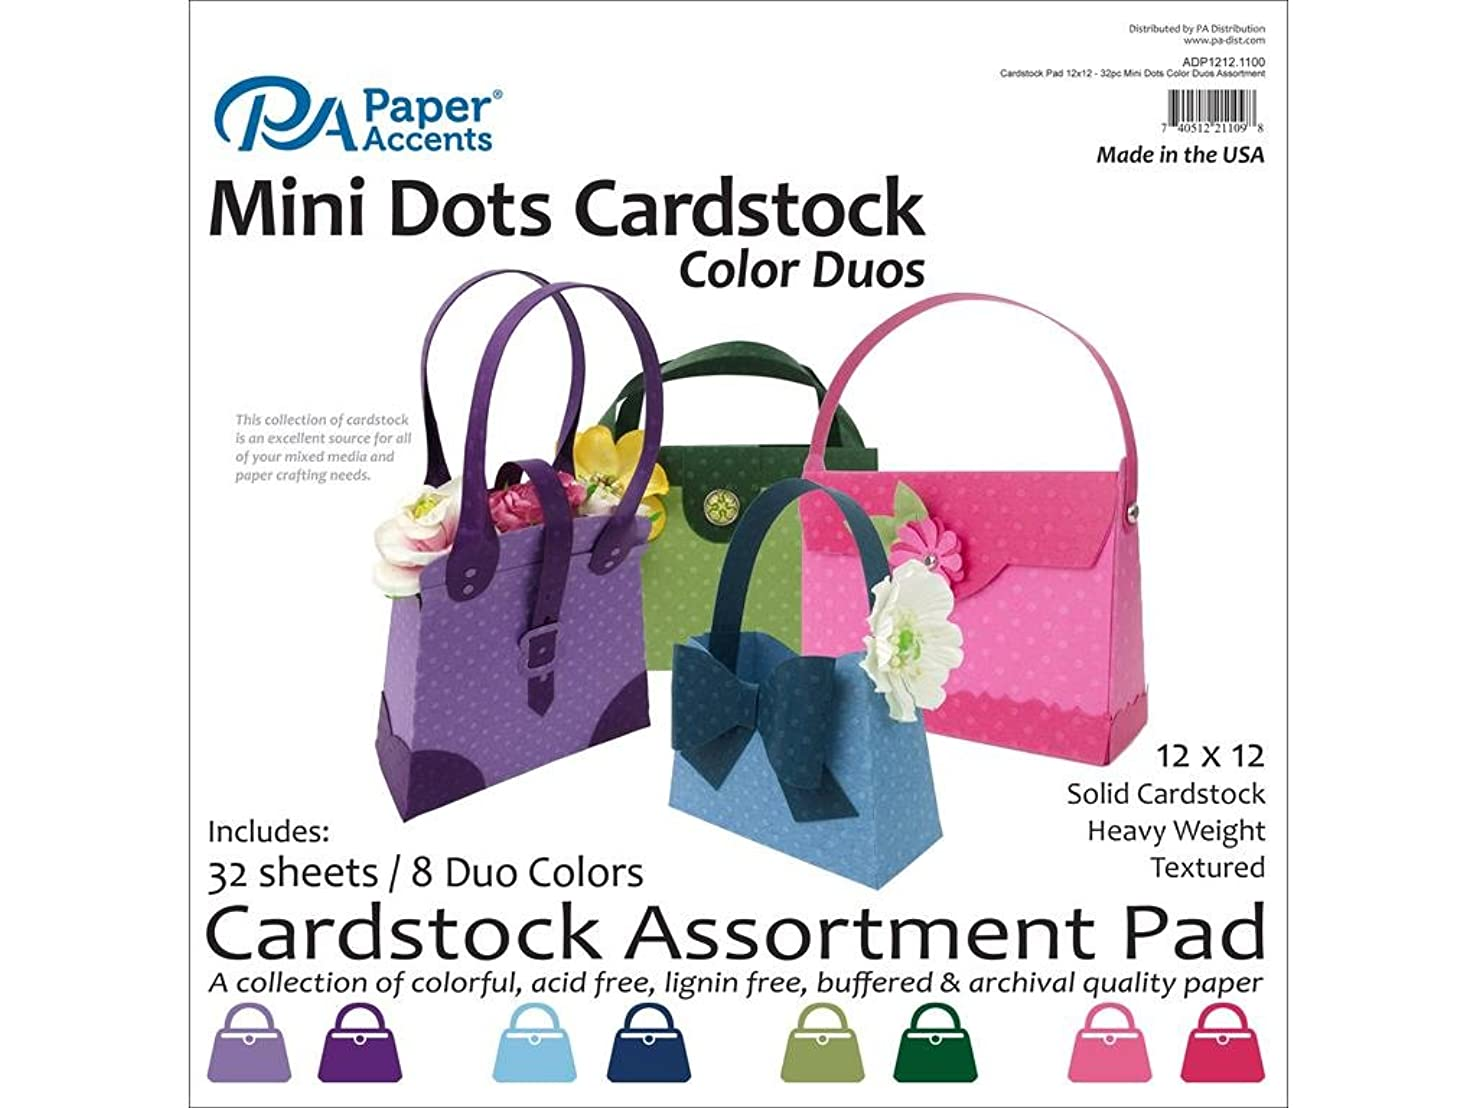 Accent Design Paper Accents Cdstk Cardstock Pad 12x12 32pc Mini Dots Color Duos AST